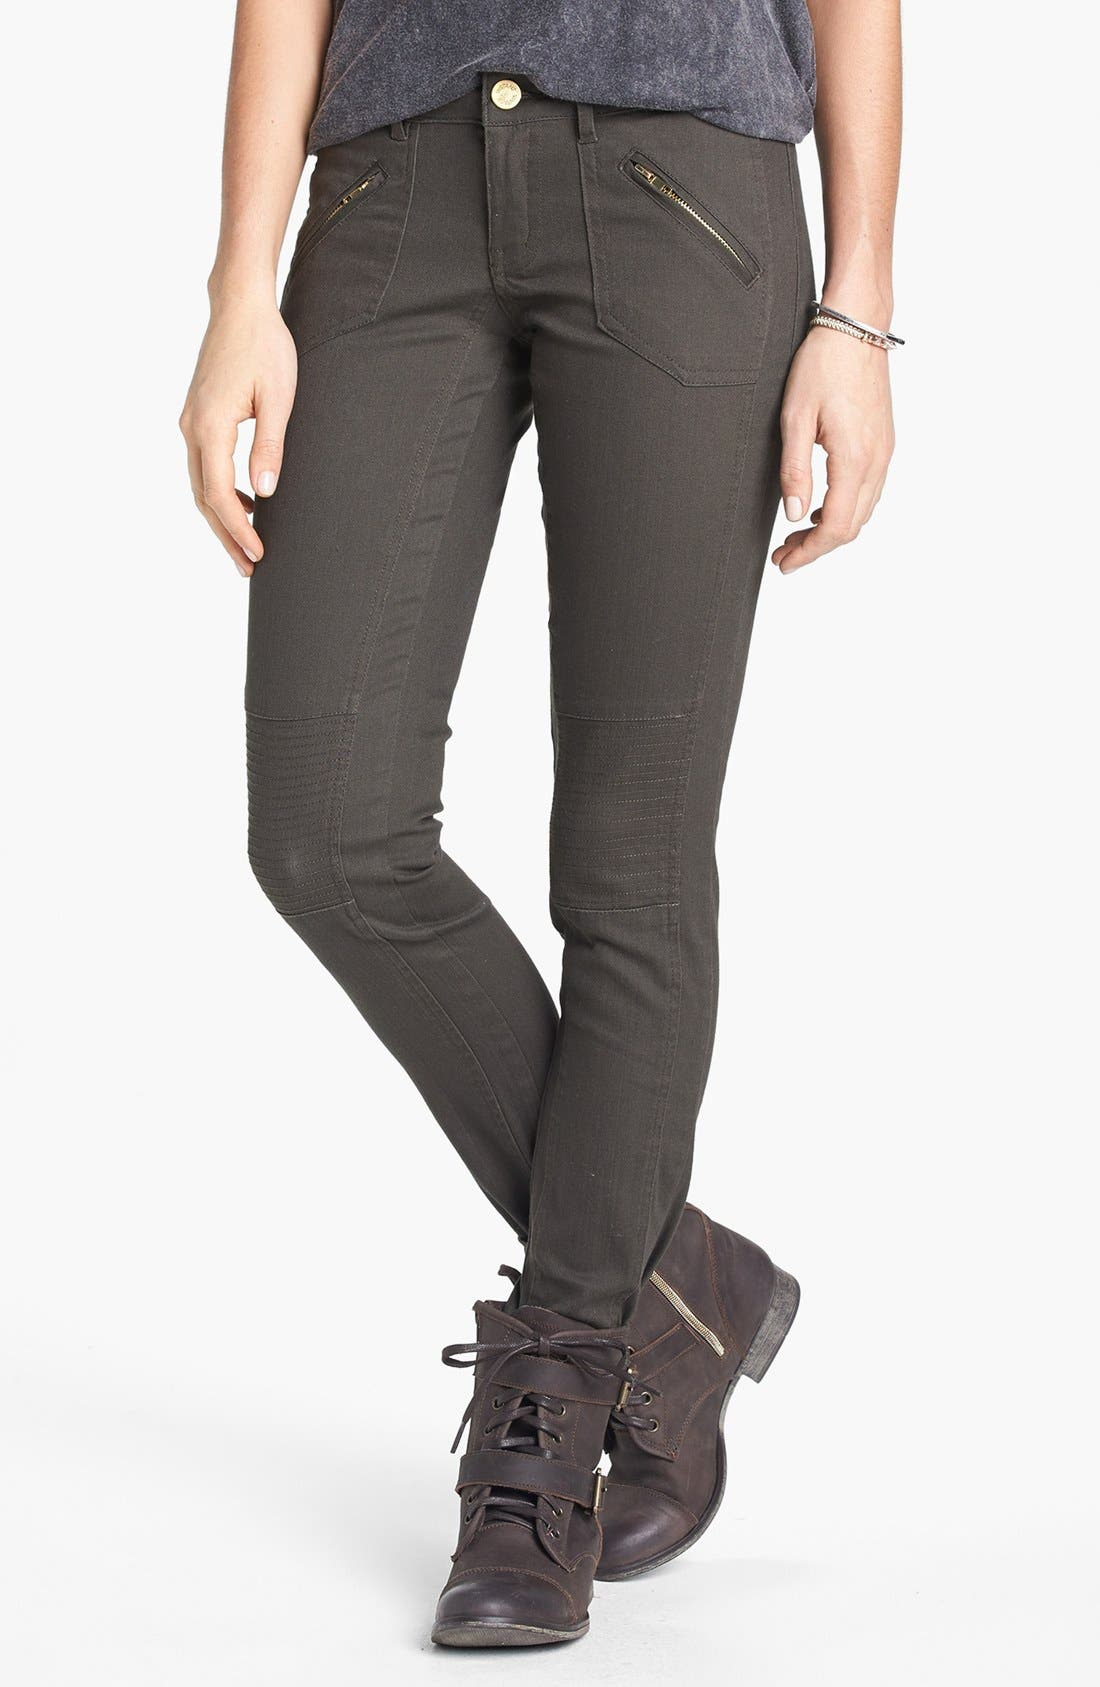 Main Image - INSTANT VINTAGE Moto Skinny Jeans (Army Green) (Juniors) (Online Only)